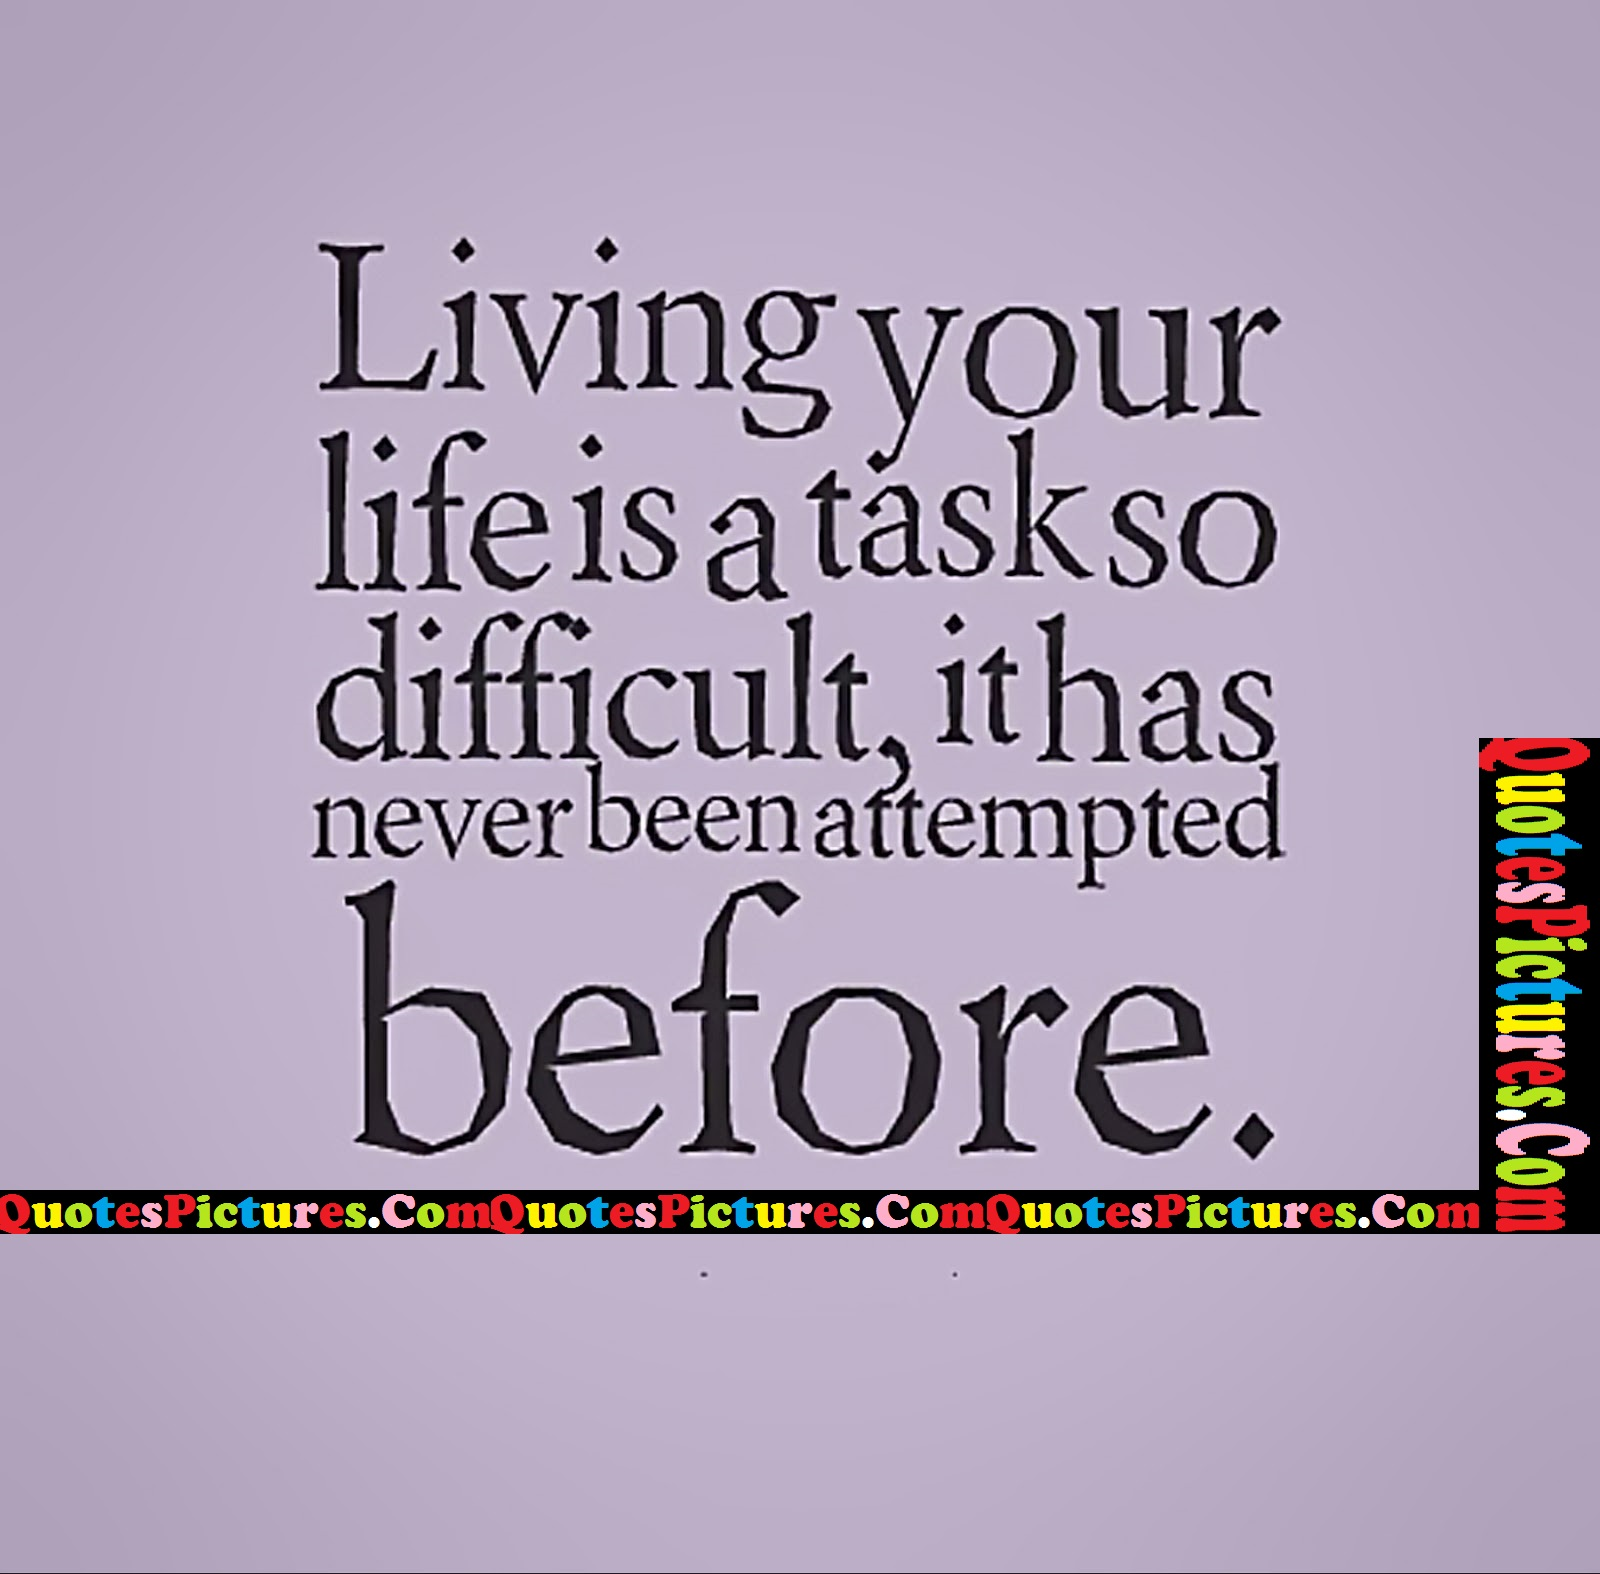 Gorgeous Life Quote - Living Your Life Is A Task So Difficult